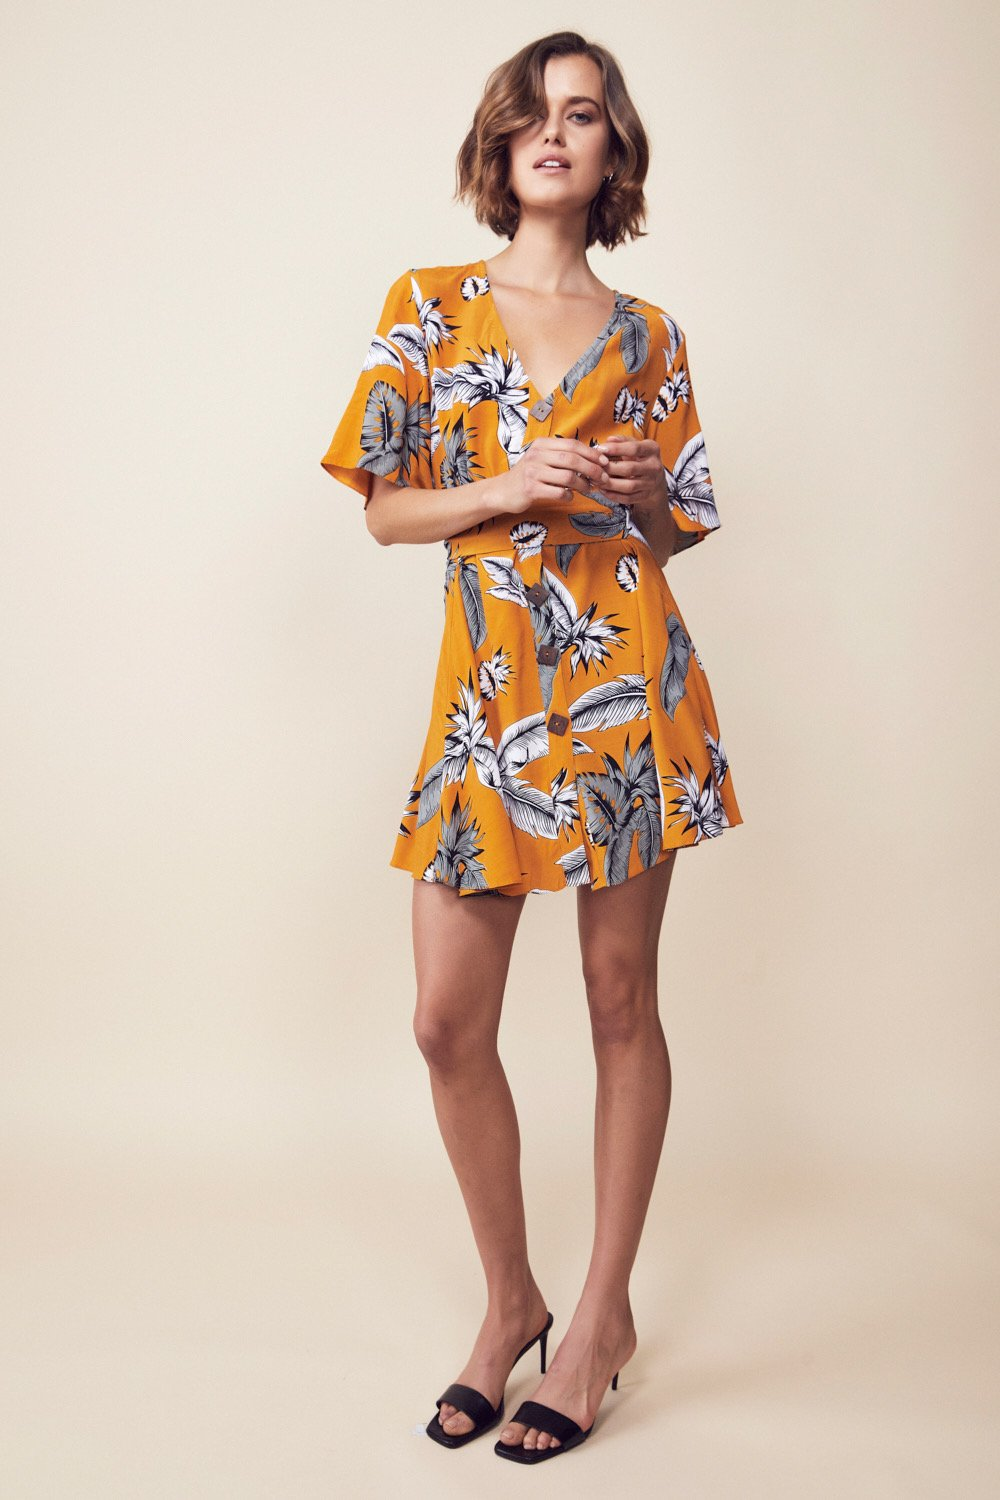 Yonder Dress, top Australian Ethical Clothing Label Rare Muse